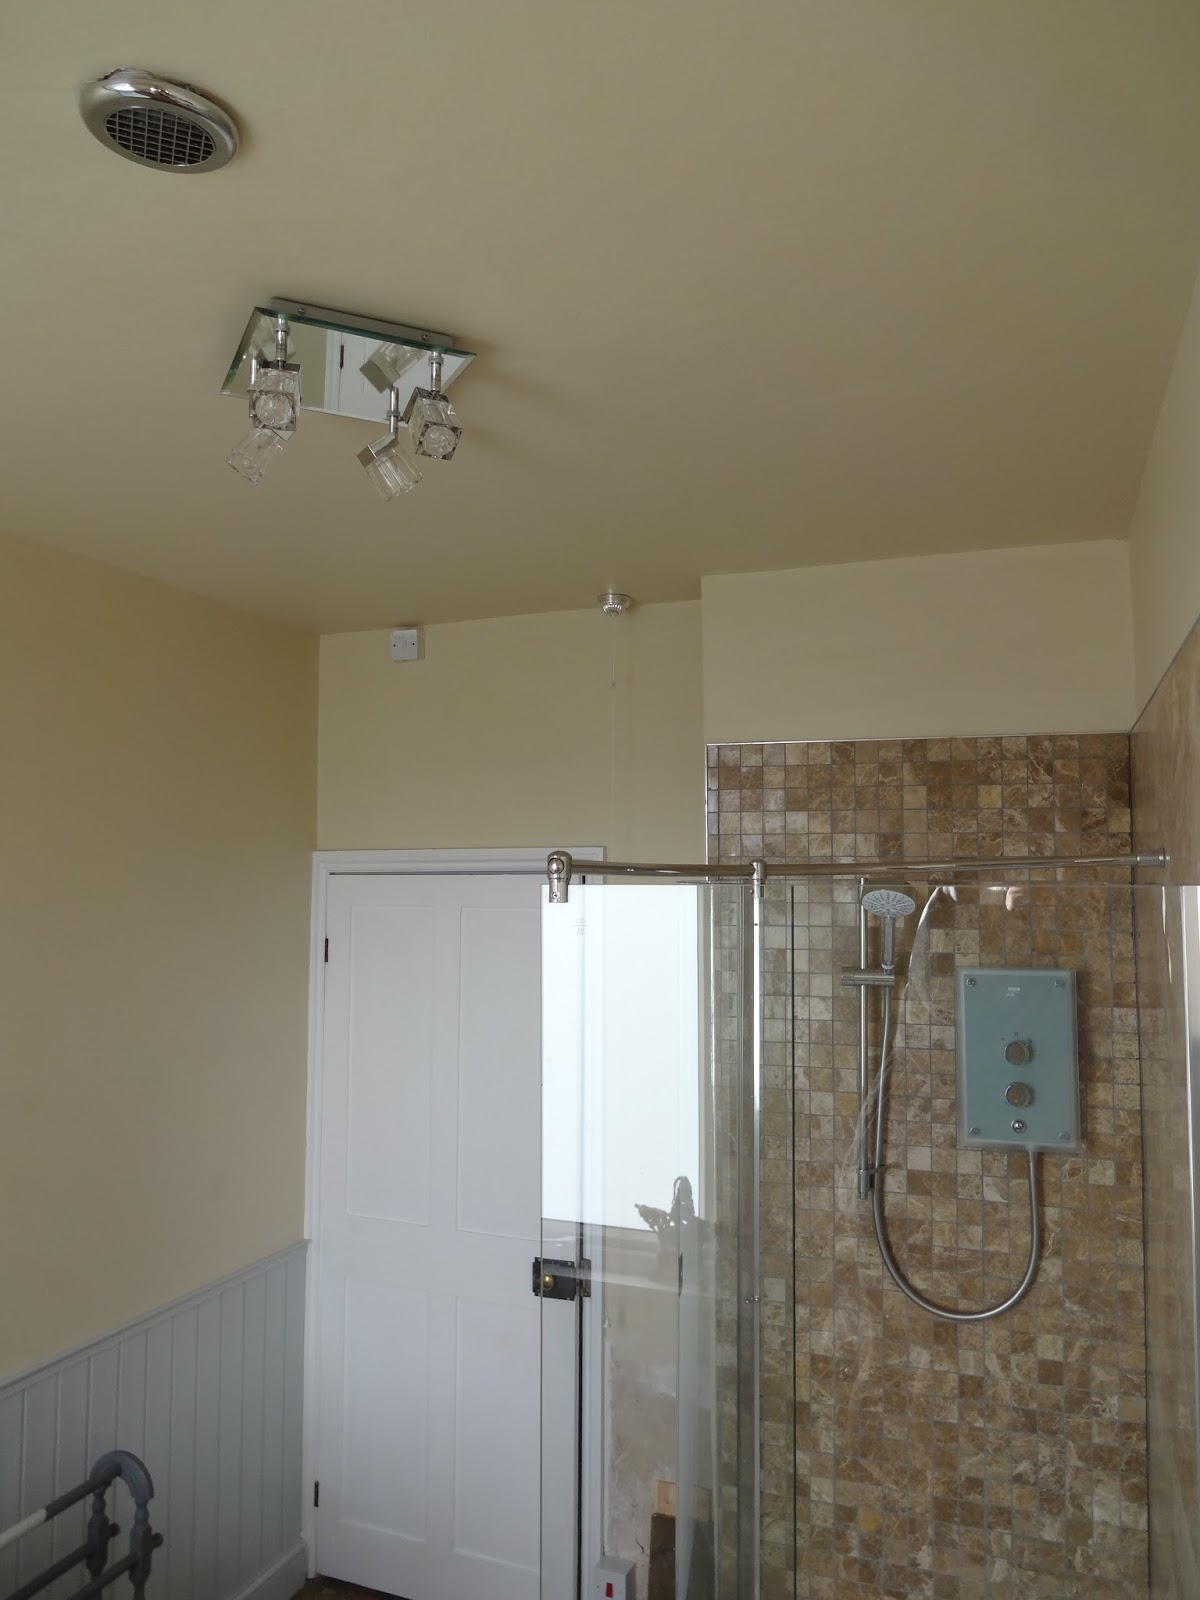 Bathroom Extractor Fan With Light: UK Home Renovation, Interiors And DIY Blog